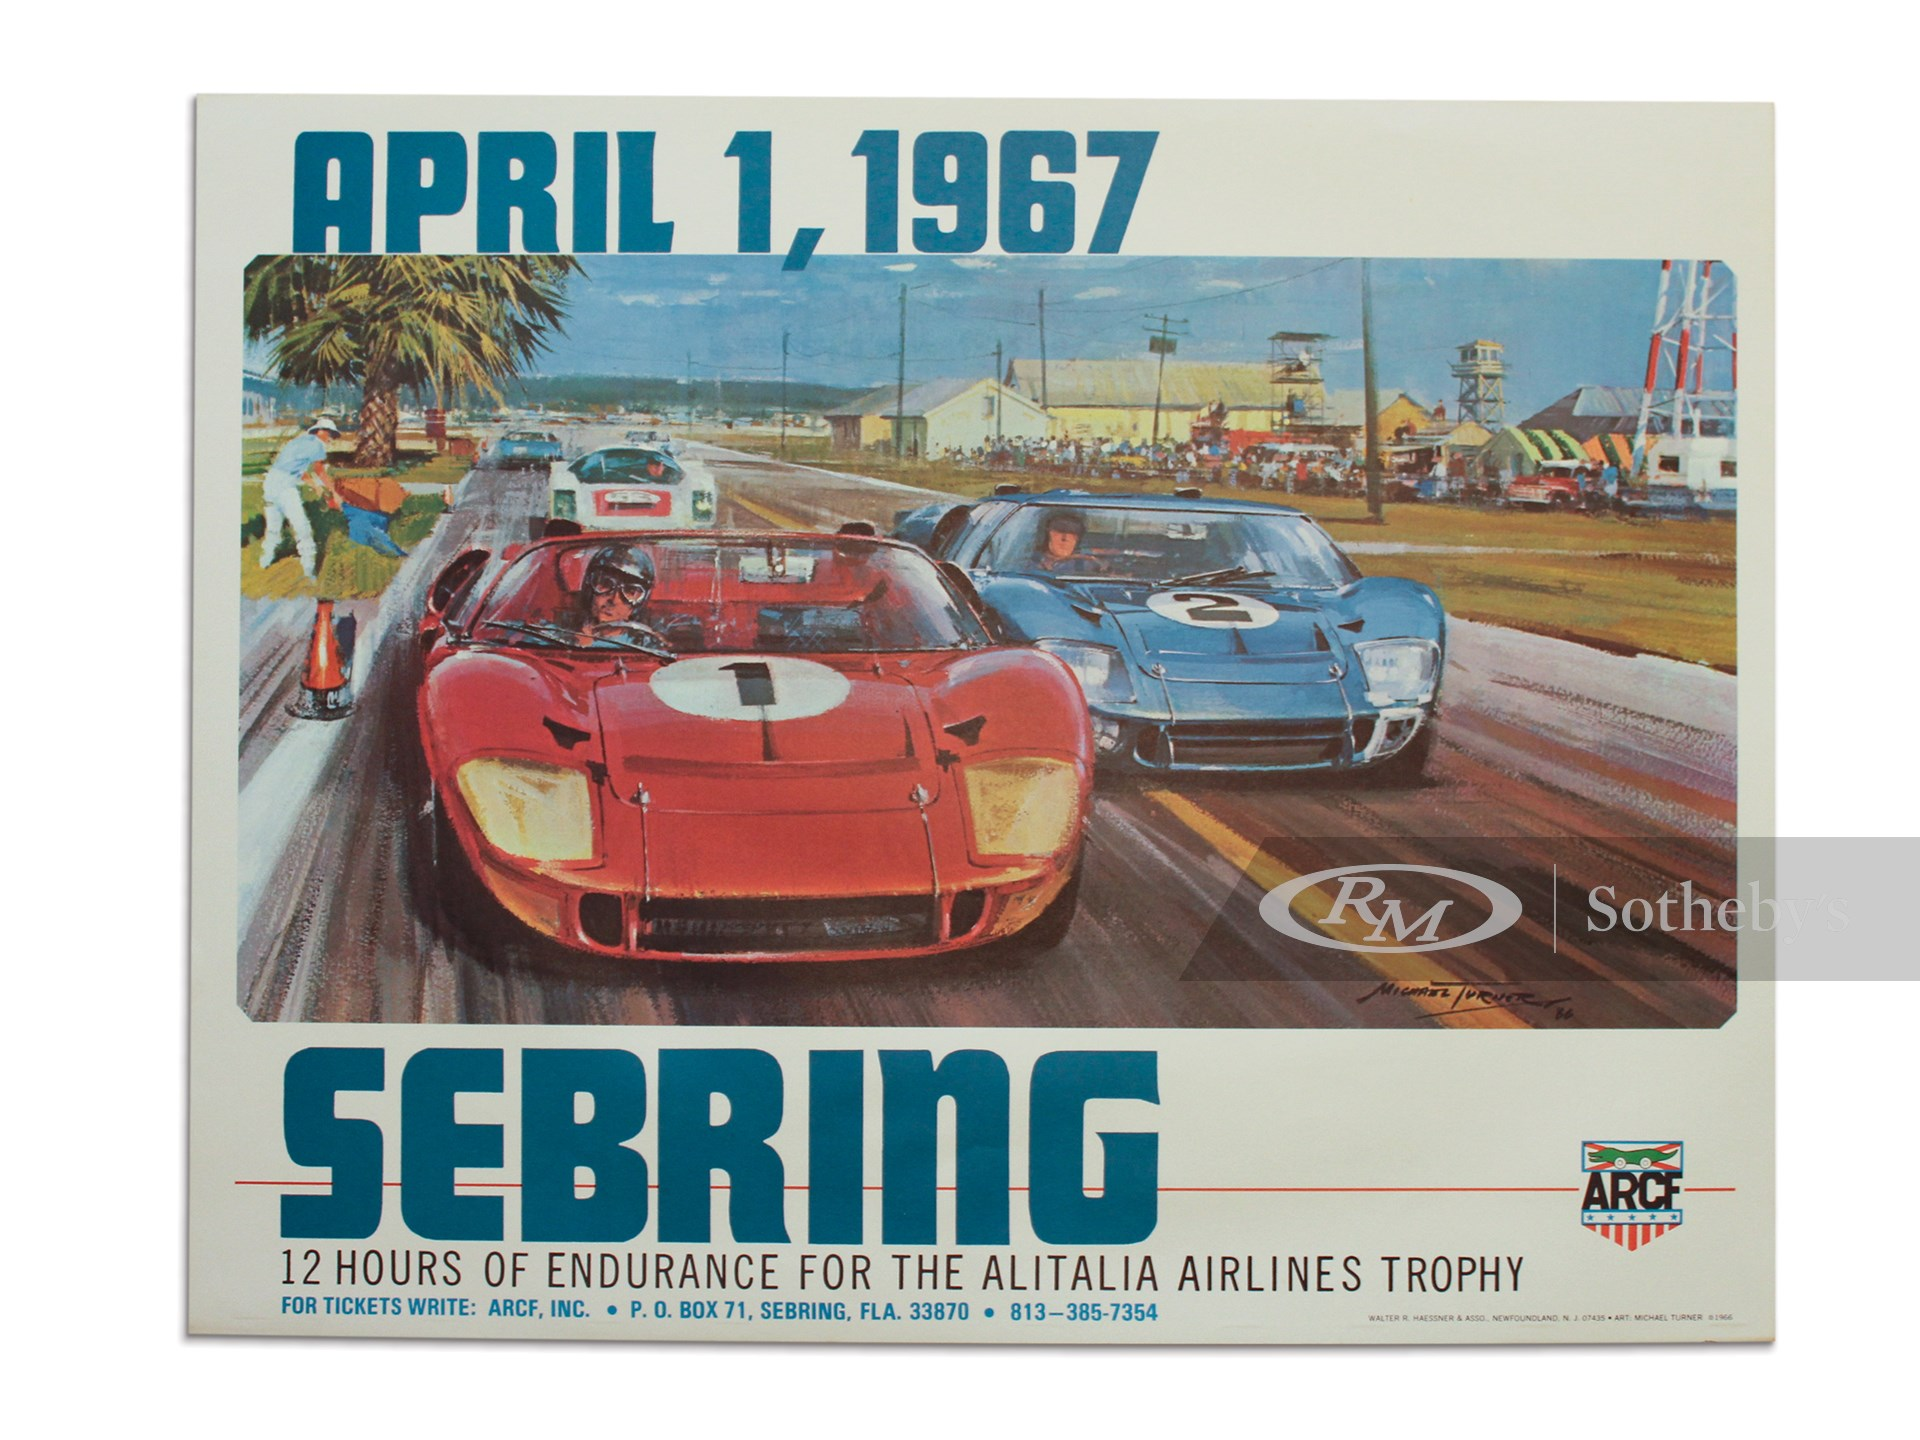 022 Vintage Advertising Transport Art  Sebring Raceway